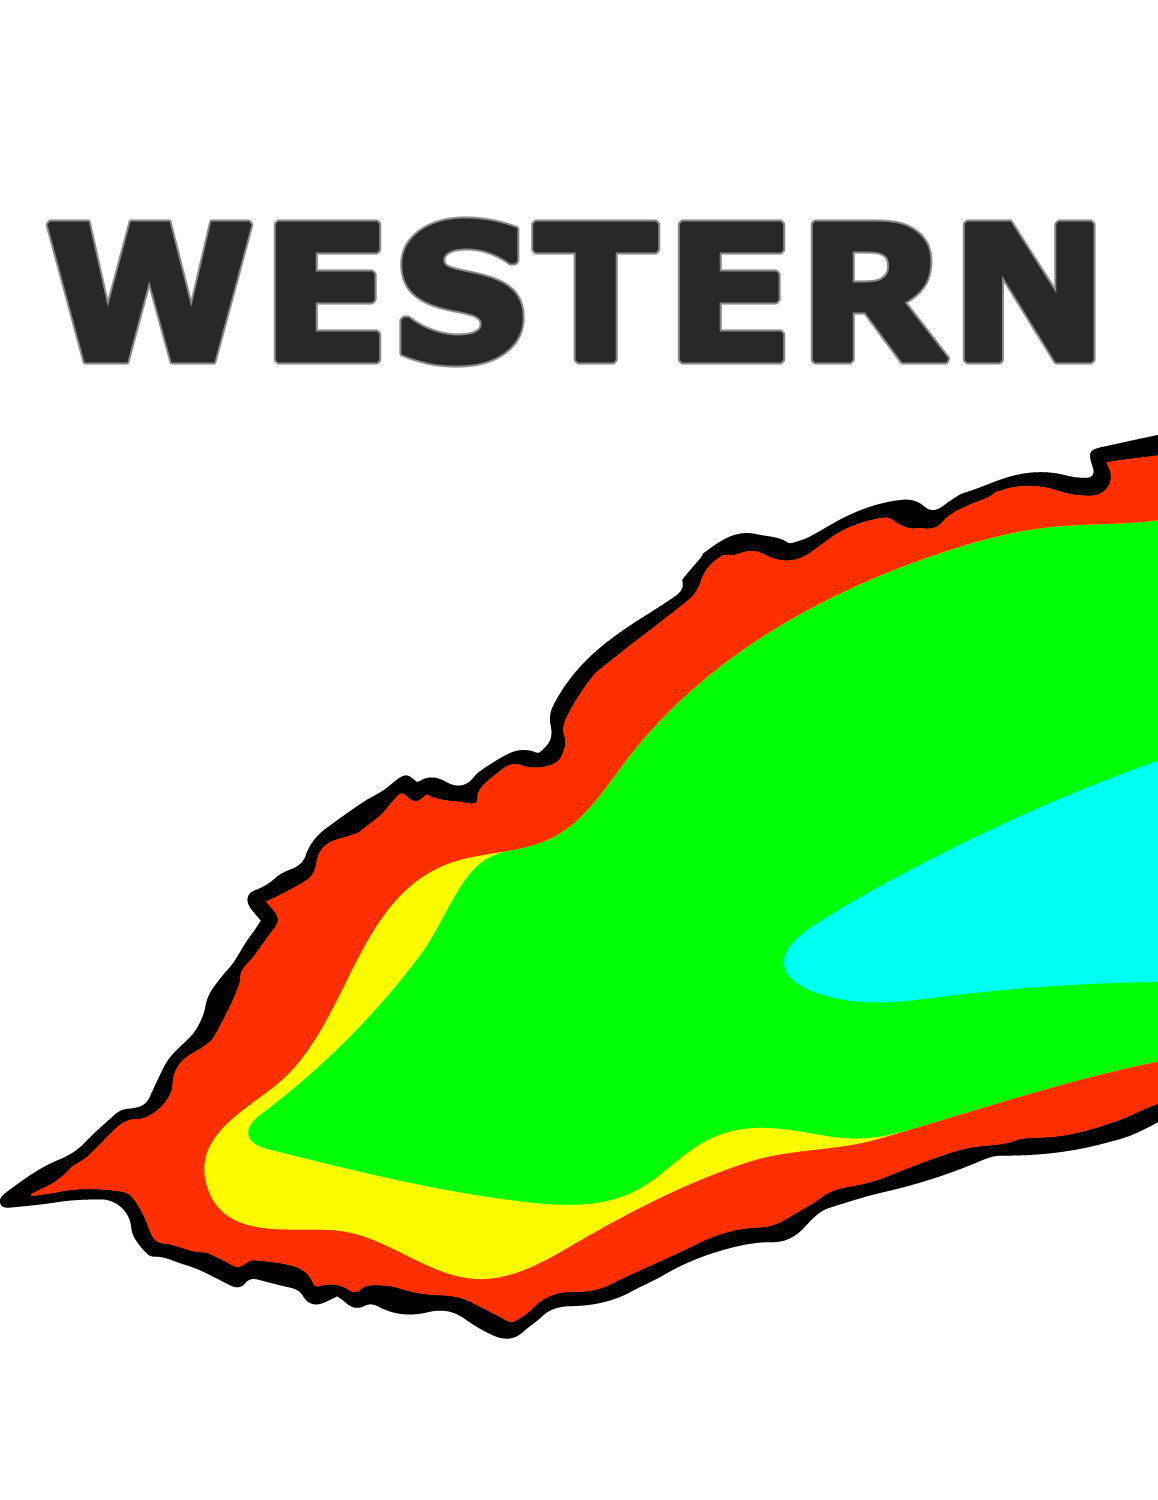 6_LakeOntario_western_optimized.png